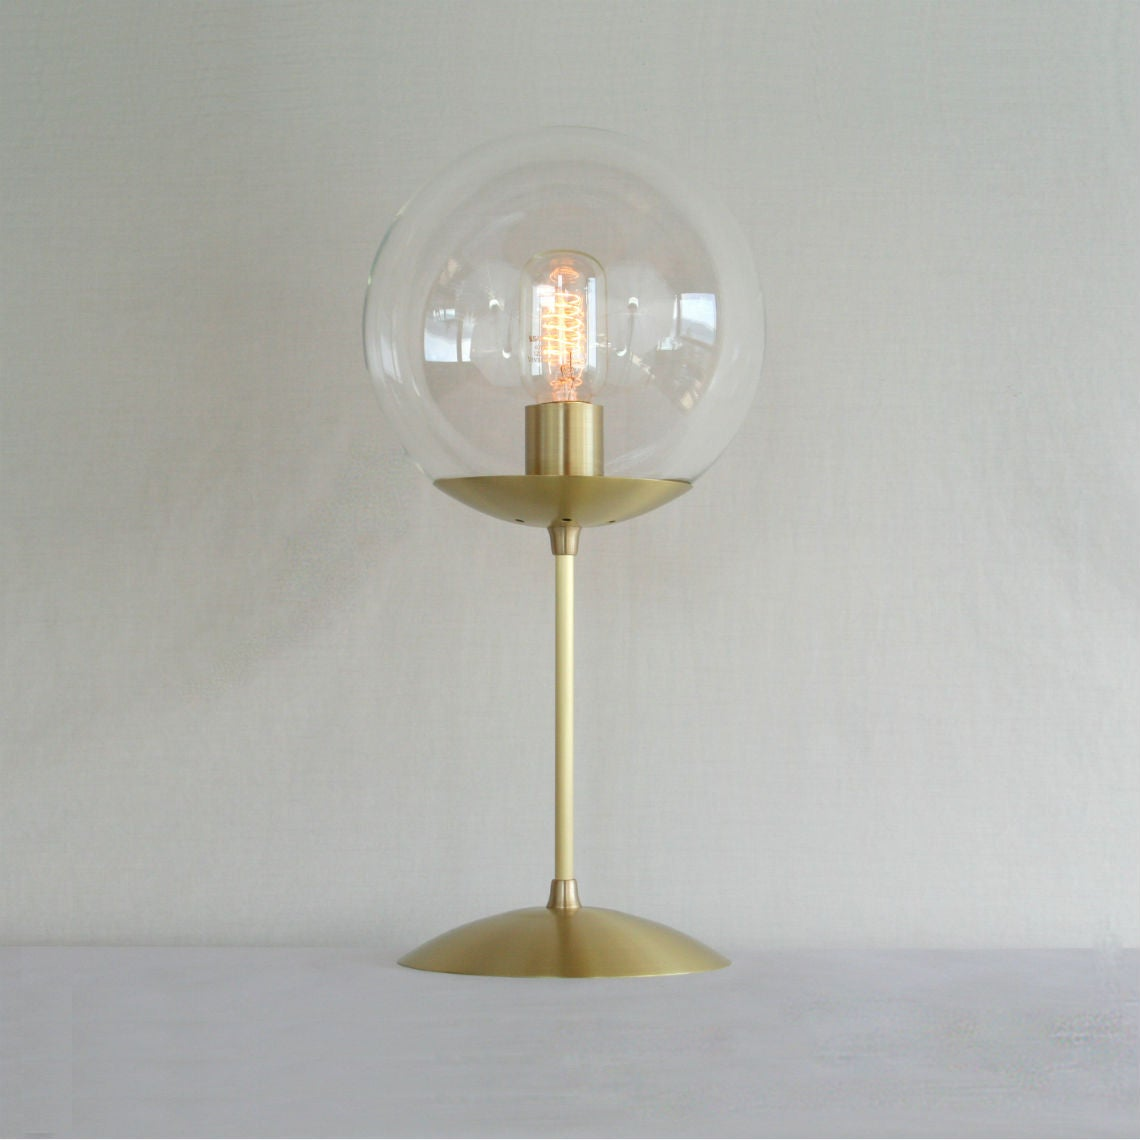 Original Josef Hurka Desk Lamps Yellow  MARDEN  Selling And Sourcing